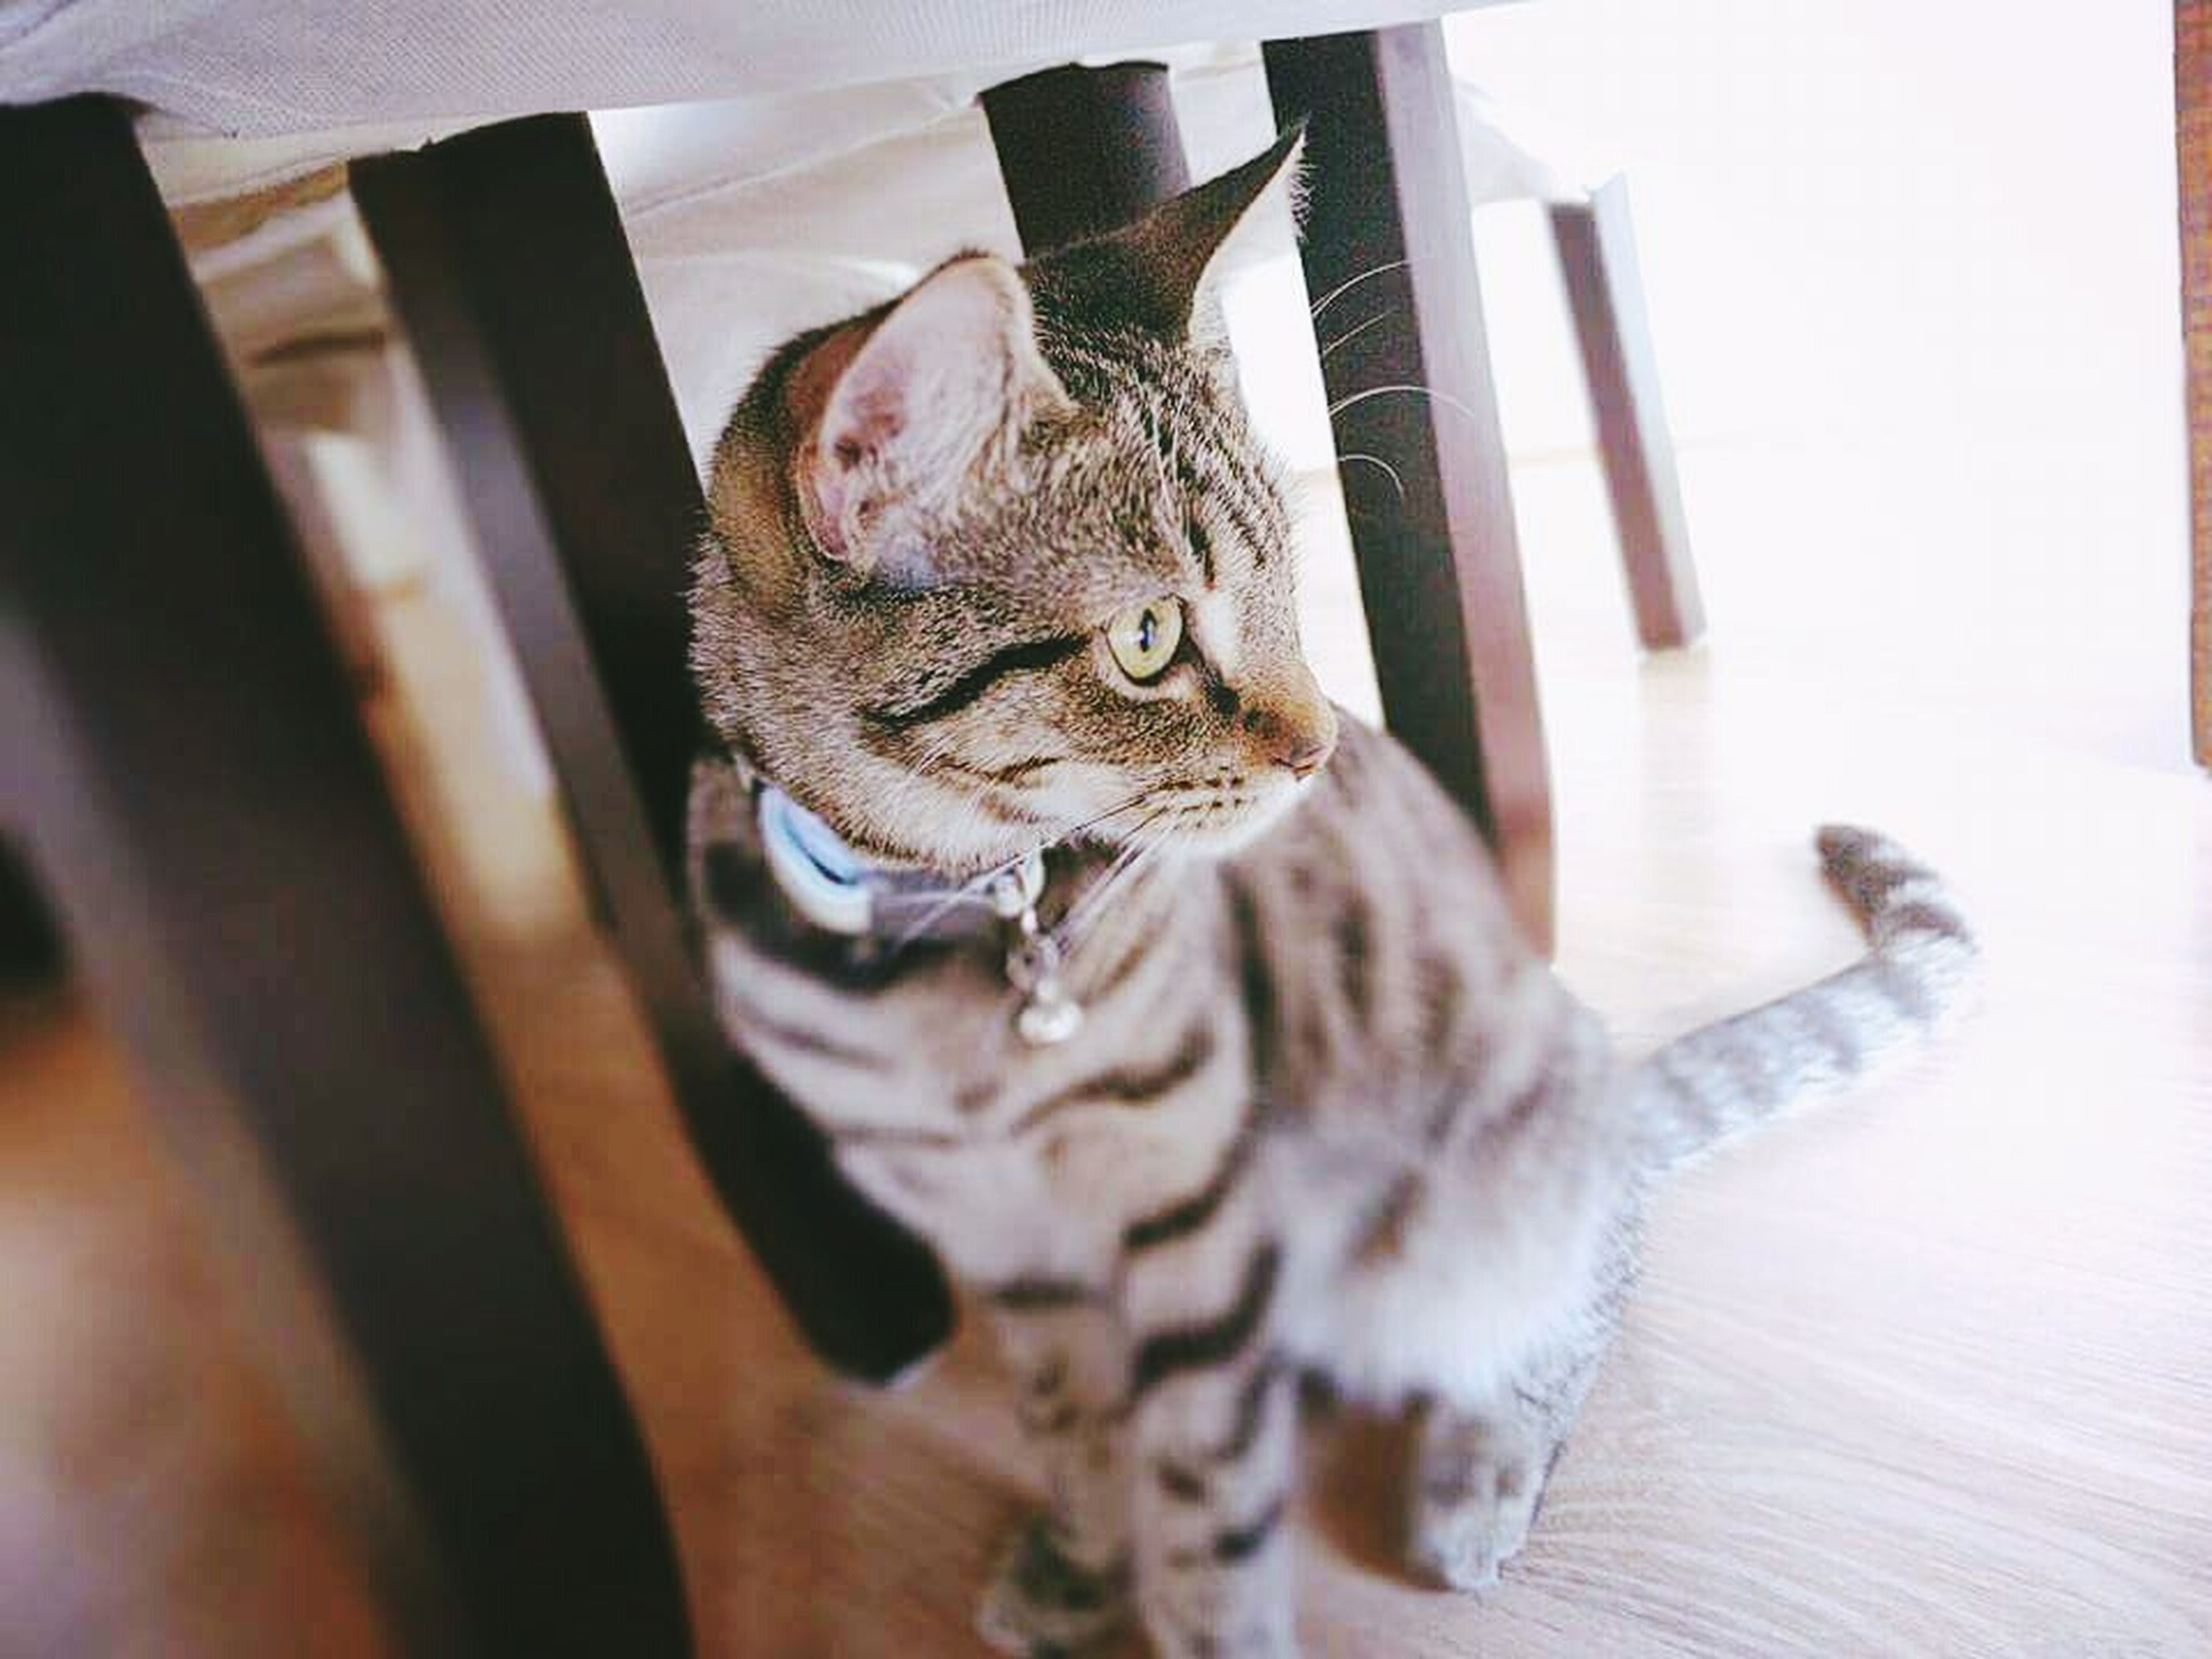 domestic cat, cat, feline, animal themes, pets, one animal, domestic animals, mammal, whisker, indoors, relaxation, portrait, close-up, tabby, looking away, home interior, alertness, resting, sitting, lying down